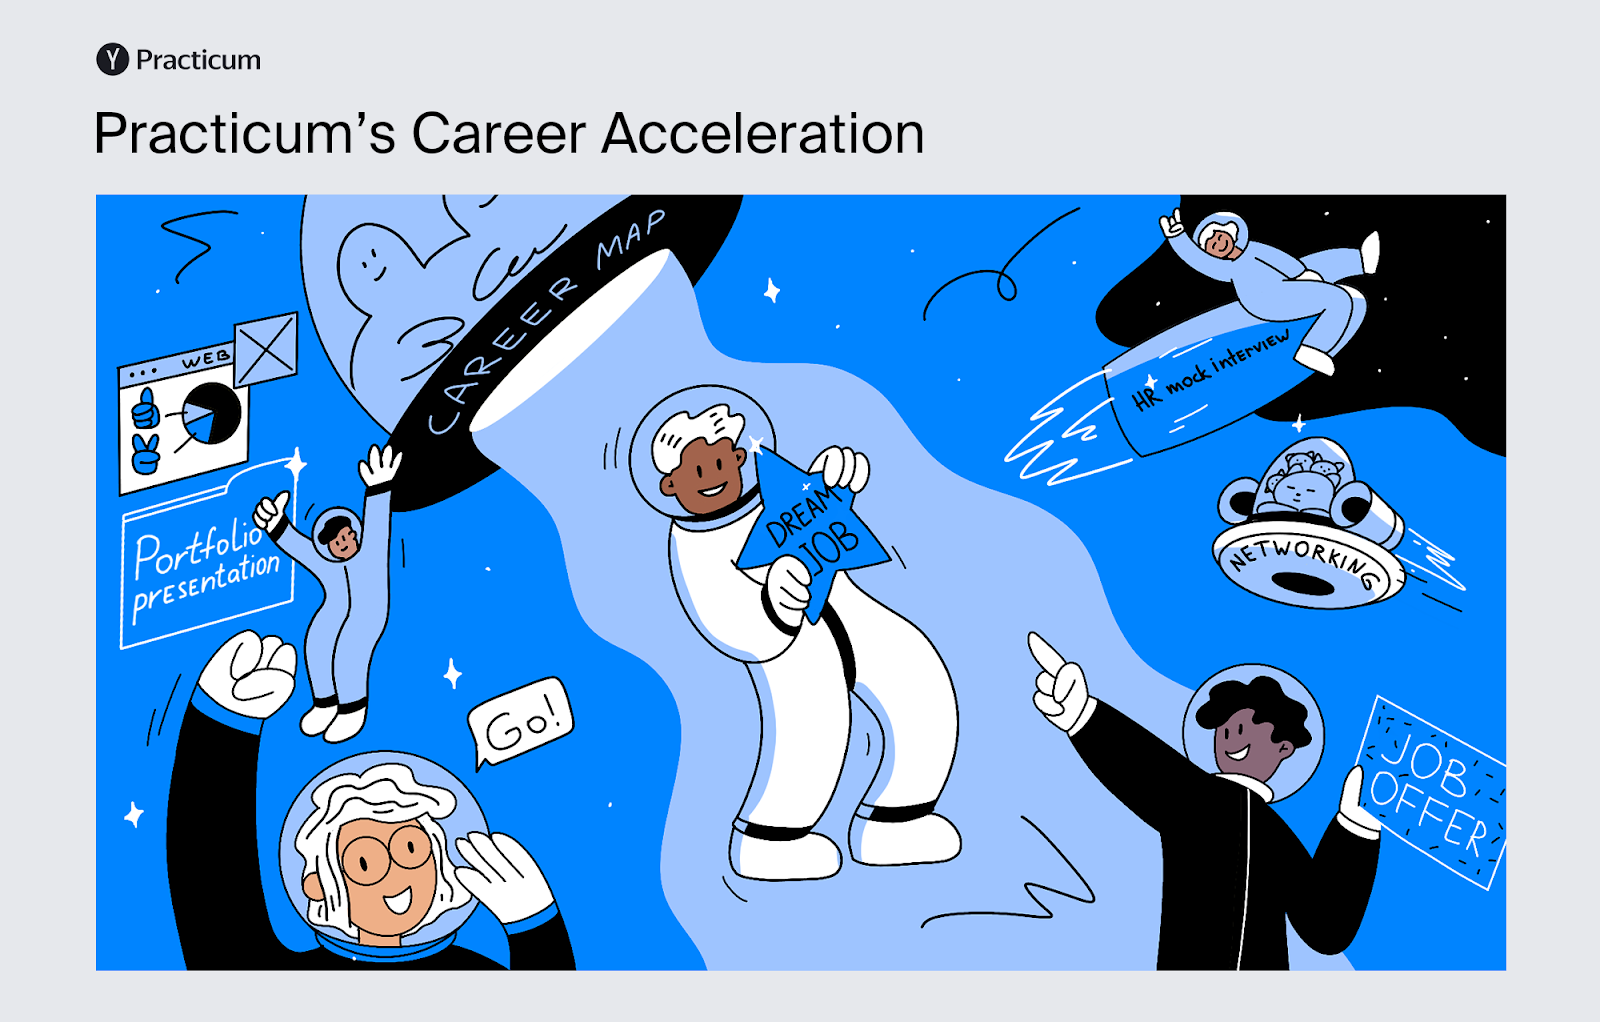 Infographic covering Practicum's career acceleration